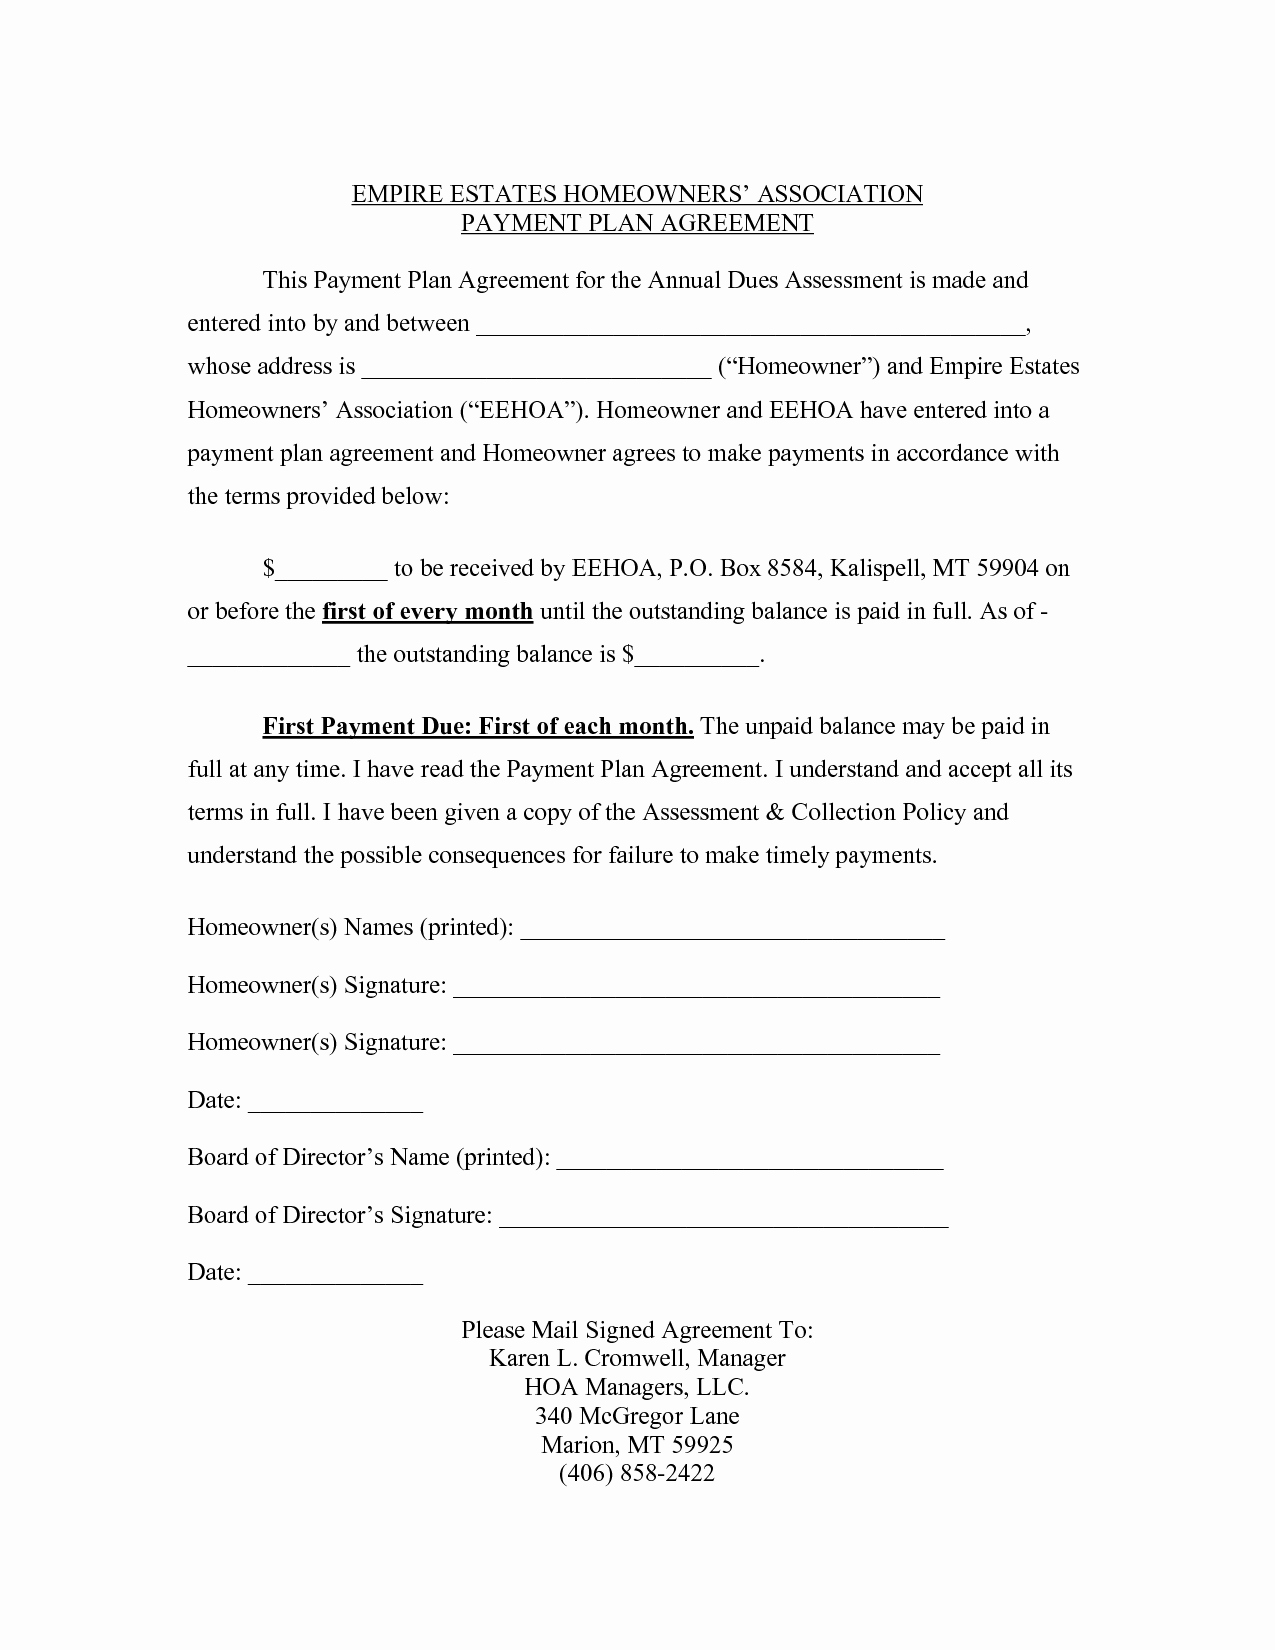 Payment Plan Agreement Templates